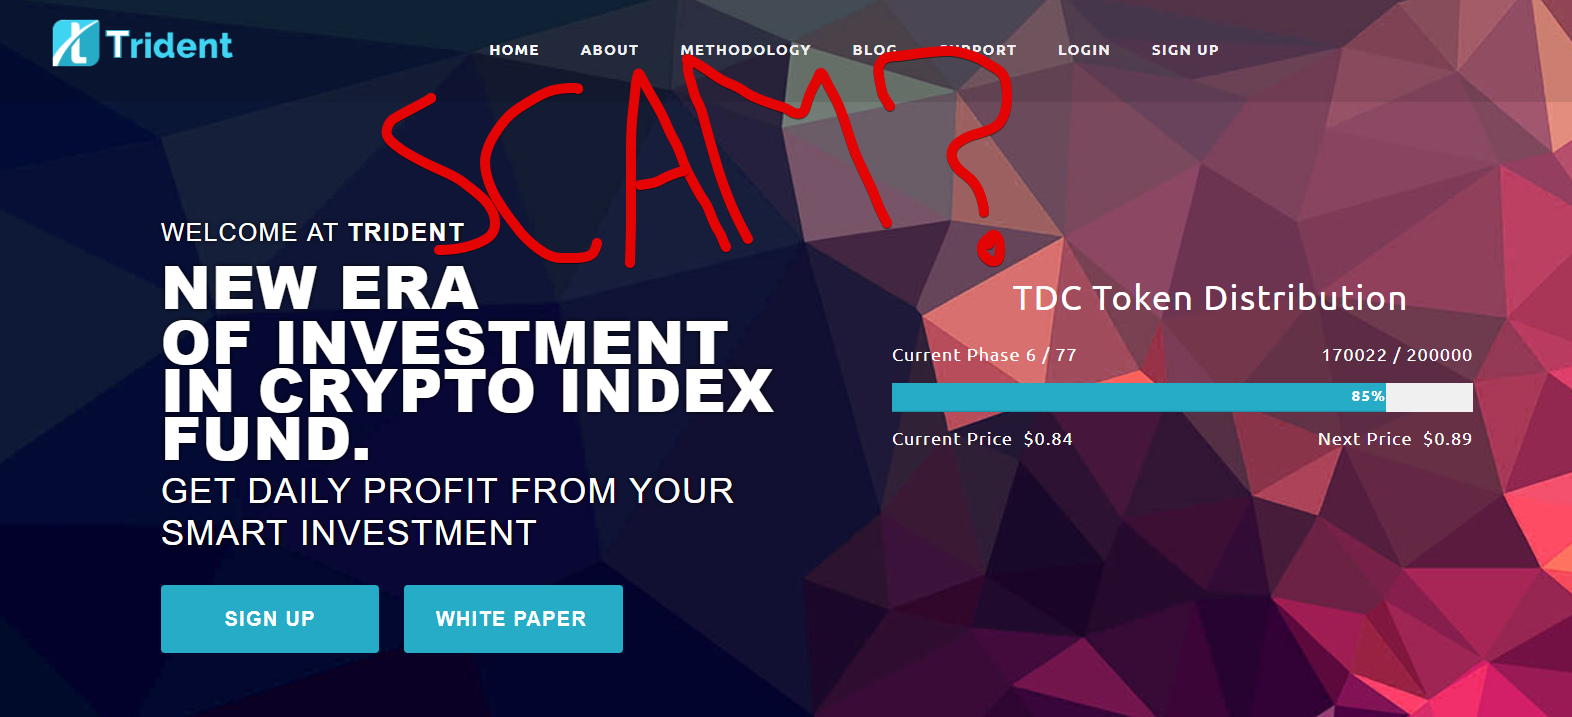 Trident Crypto Fund Scam